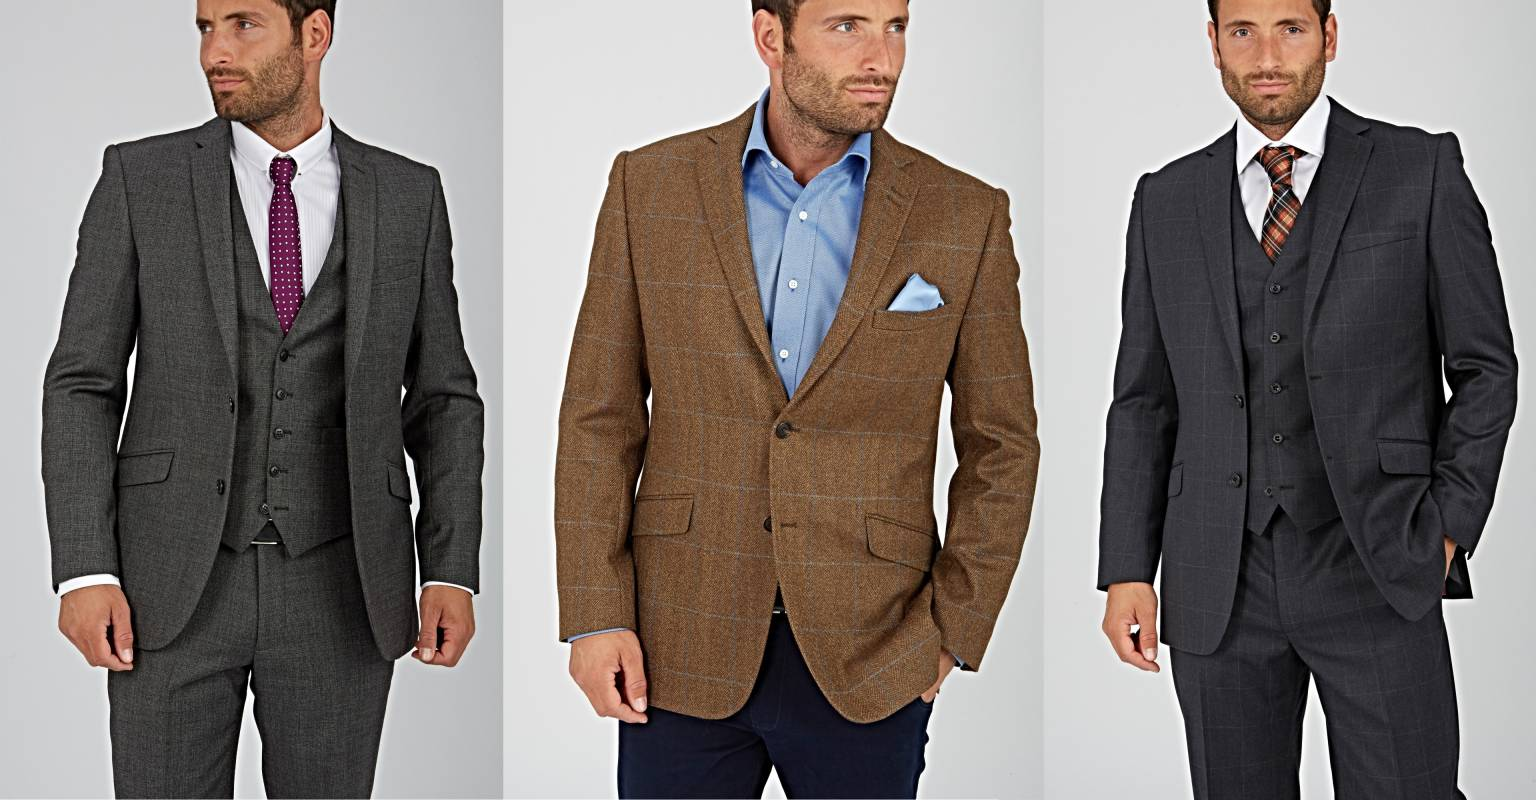 Paul Costelloe House of Frazer men's tweed jackets, suits and blazers